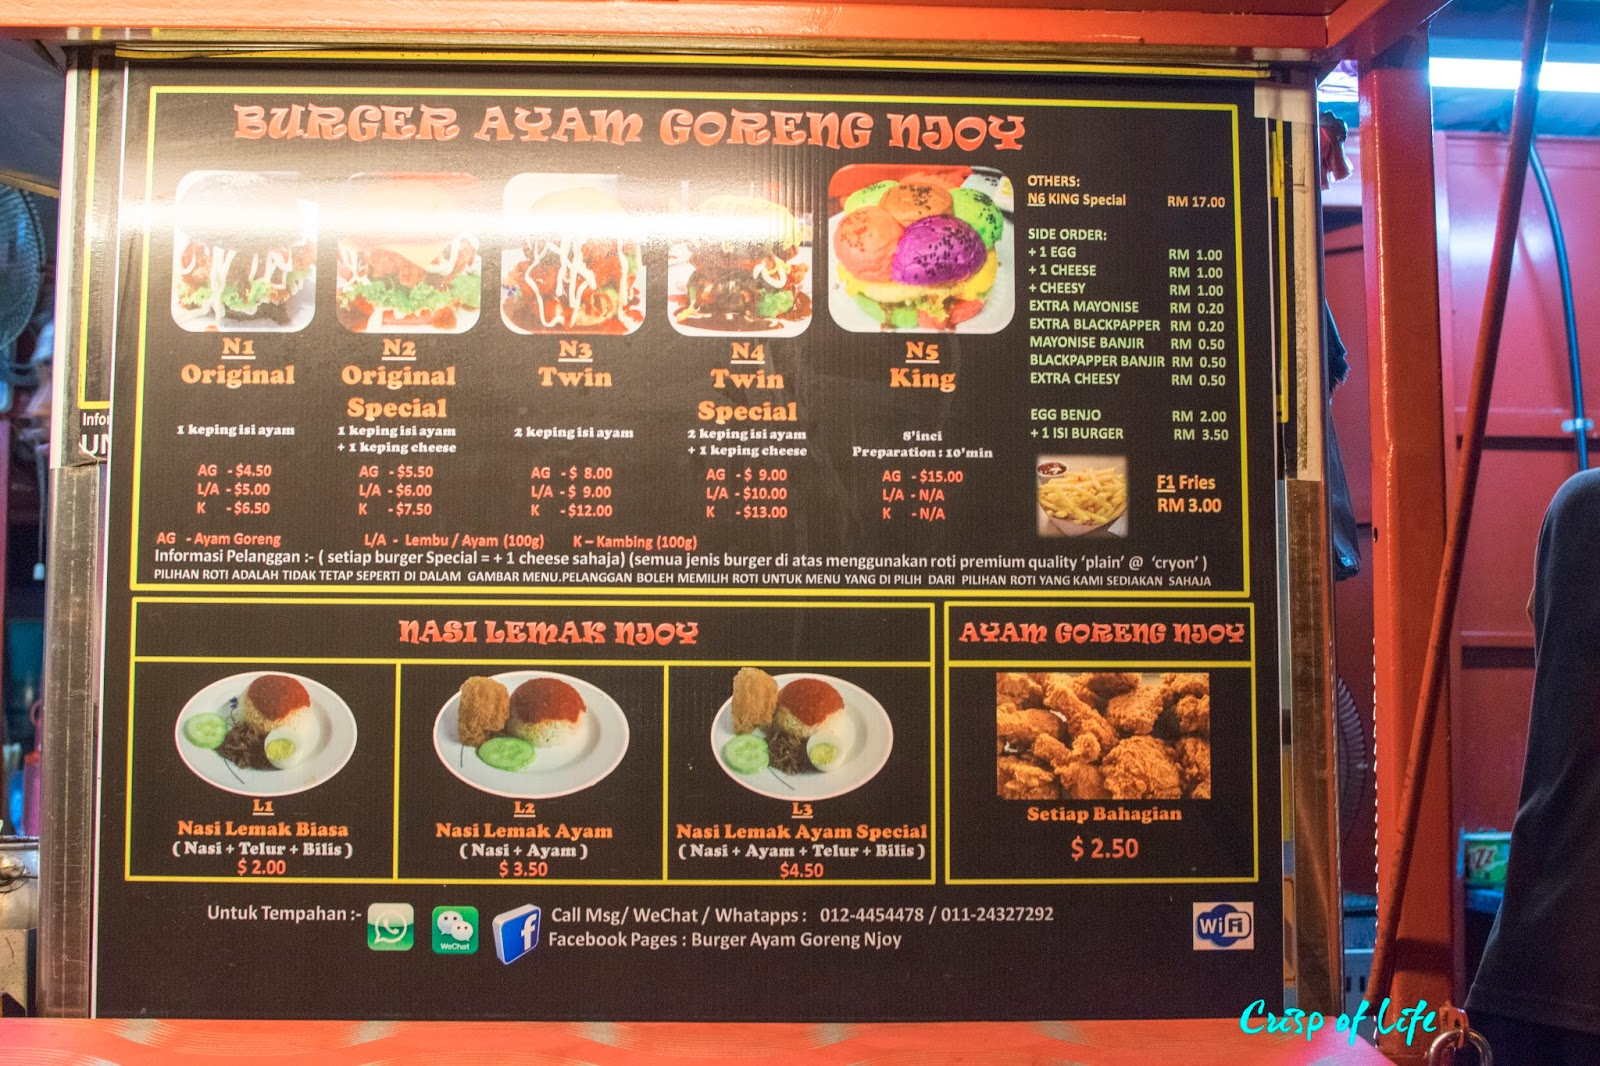 NJoy Burger Fried Chicken Burger Ayam Goreng Batu Maung